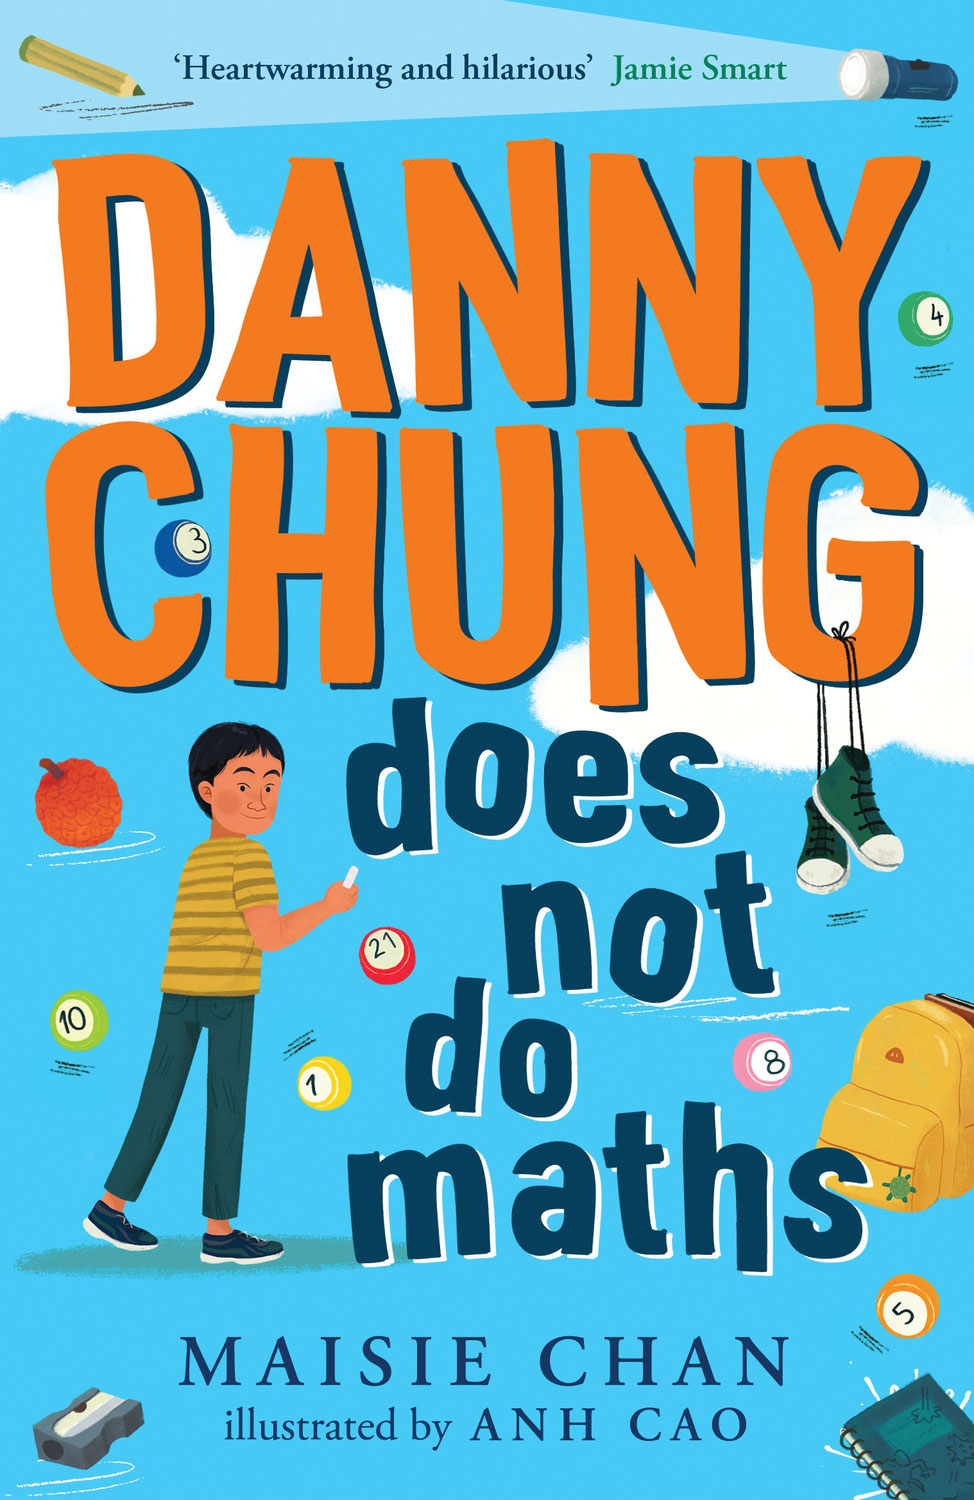 Danny Chung Does Not Do Maths is OUT NOW!